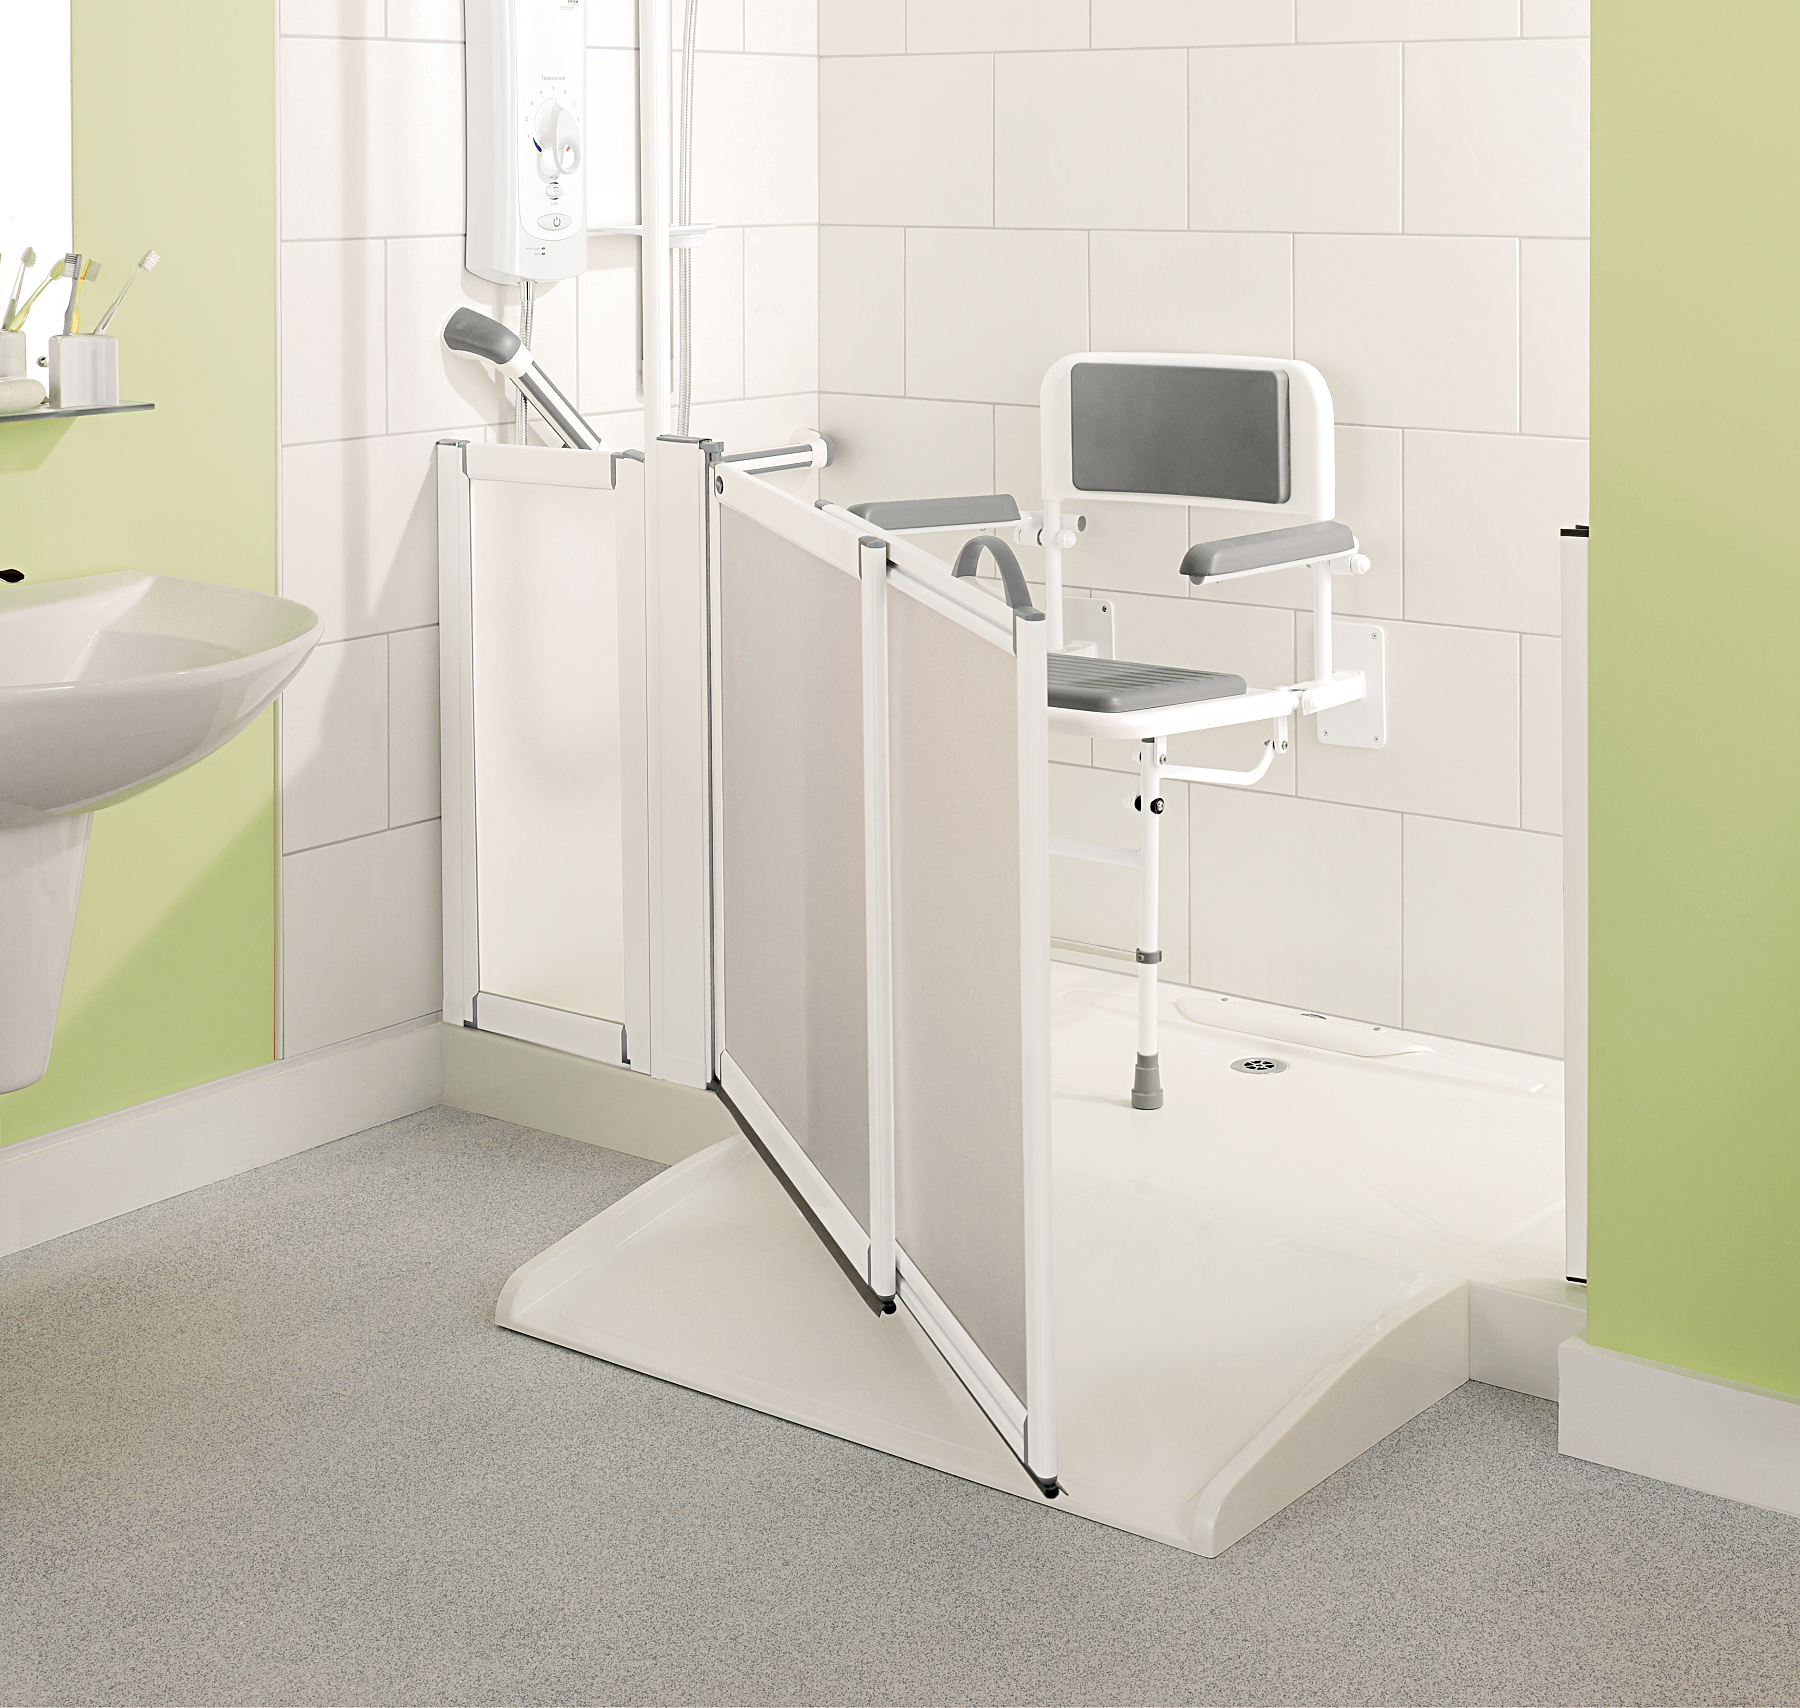 Impey Mendip shower trays